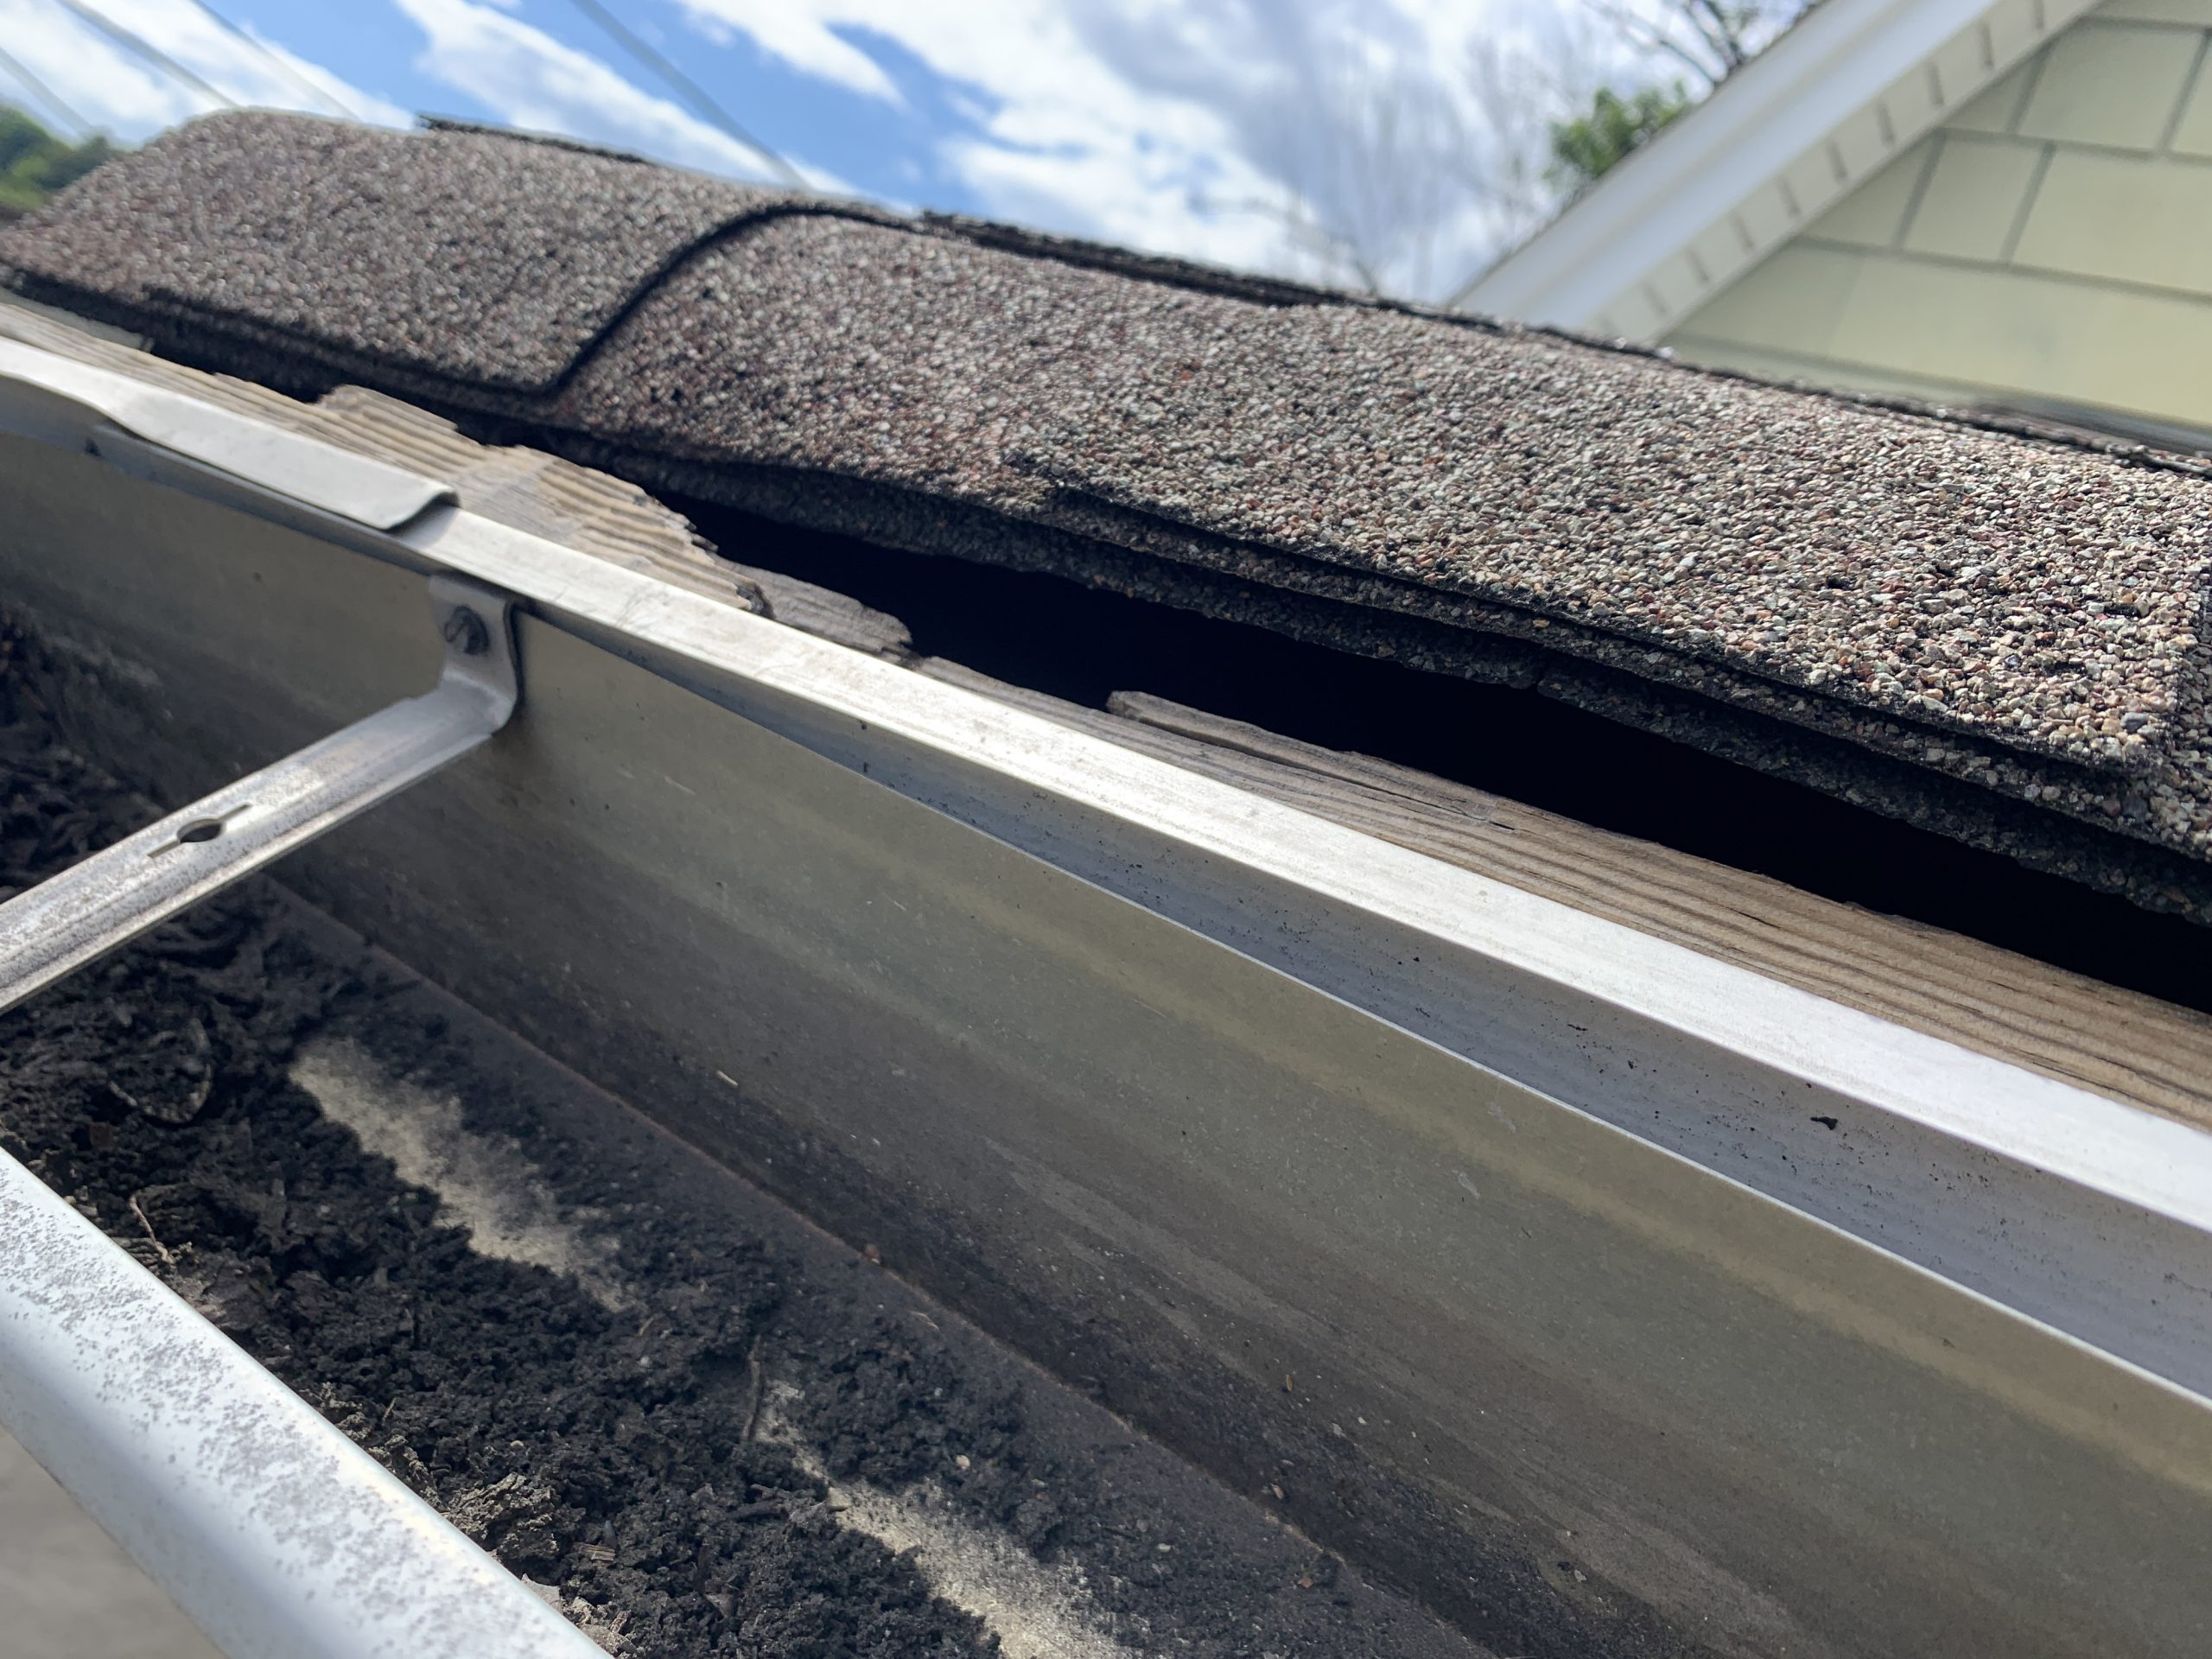 this is a picture of the edge of a roofline where there is no drip edge and the shingles are bending over the edge of a roof